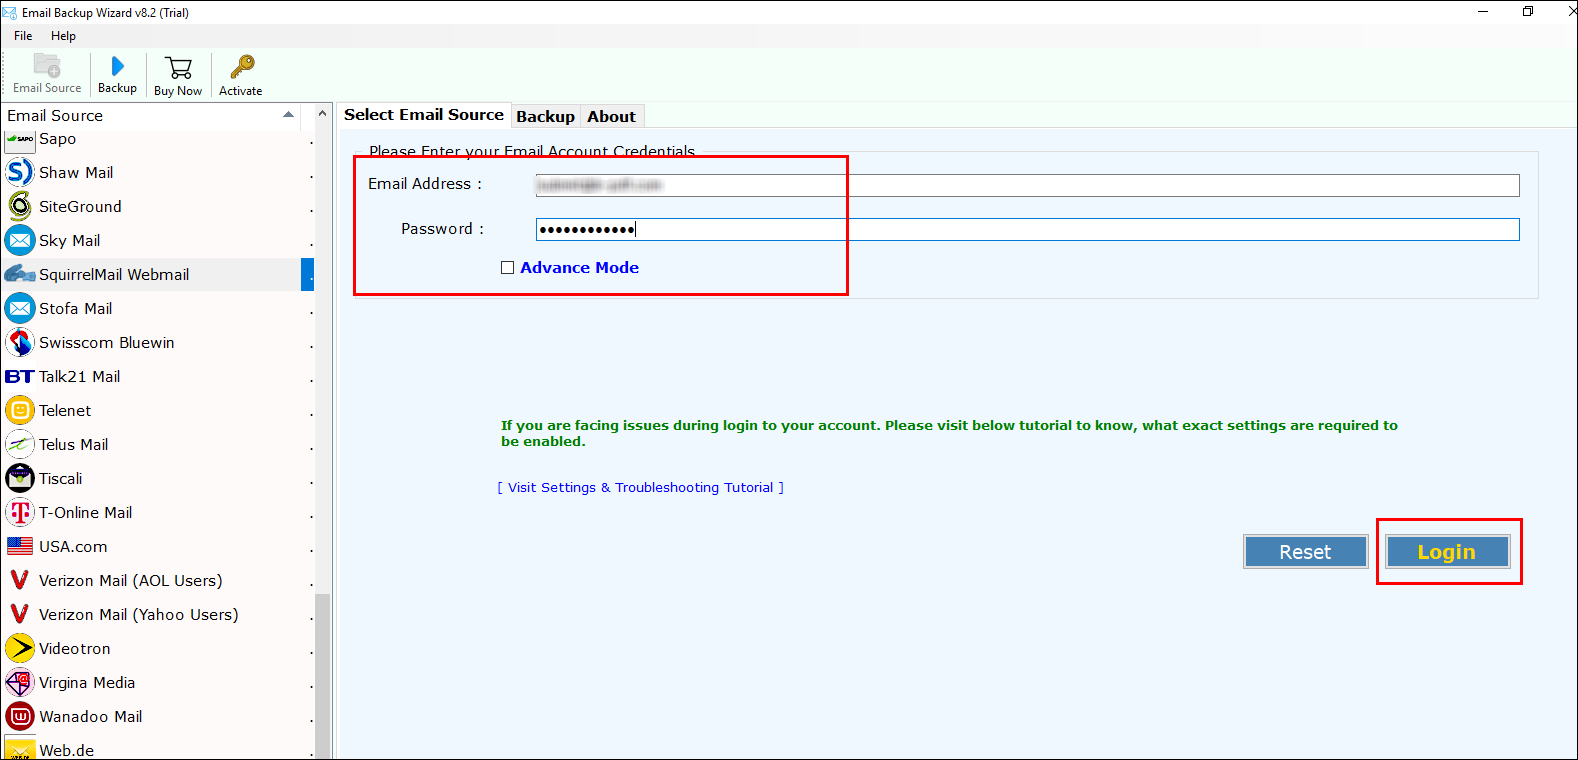 SquirrelMail to Zimbra Migration – Export SquirrelMail Emails to